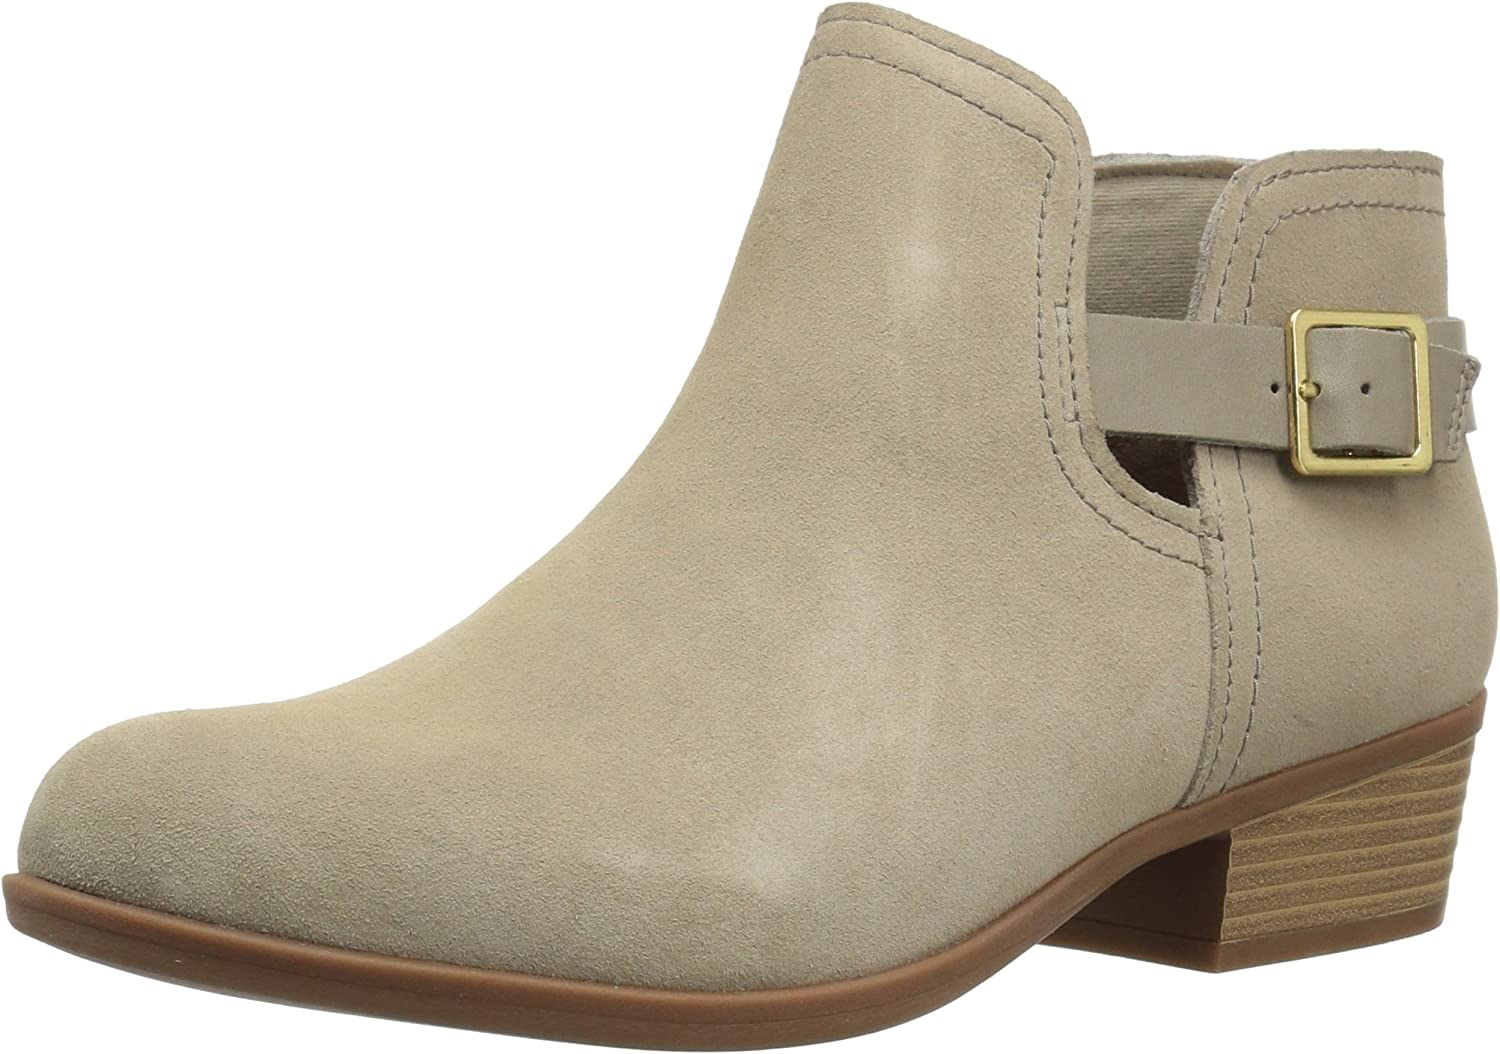 Clarks Women's Addiy Carisa Fashion Boots